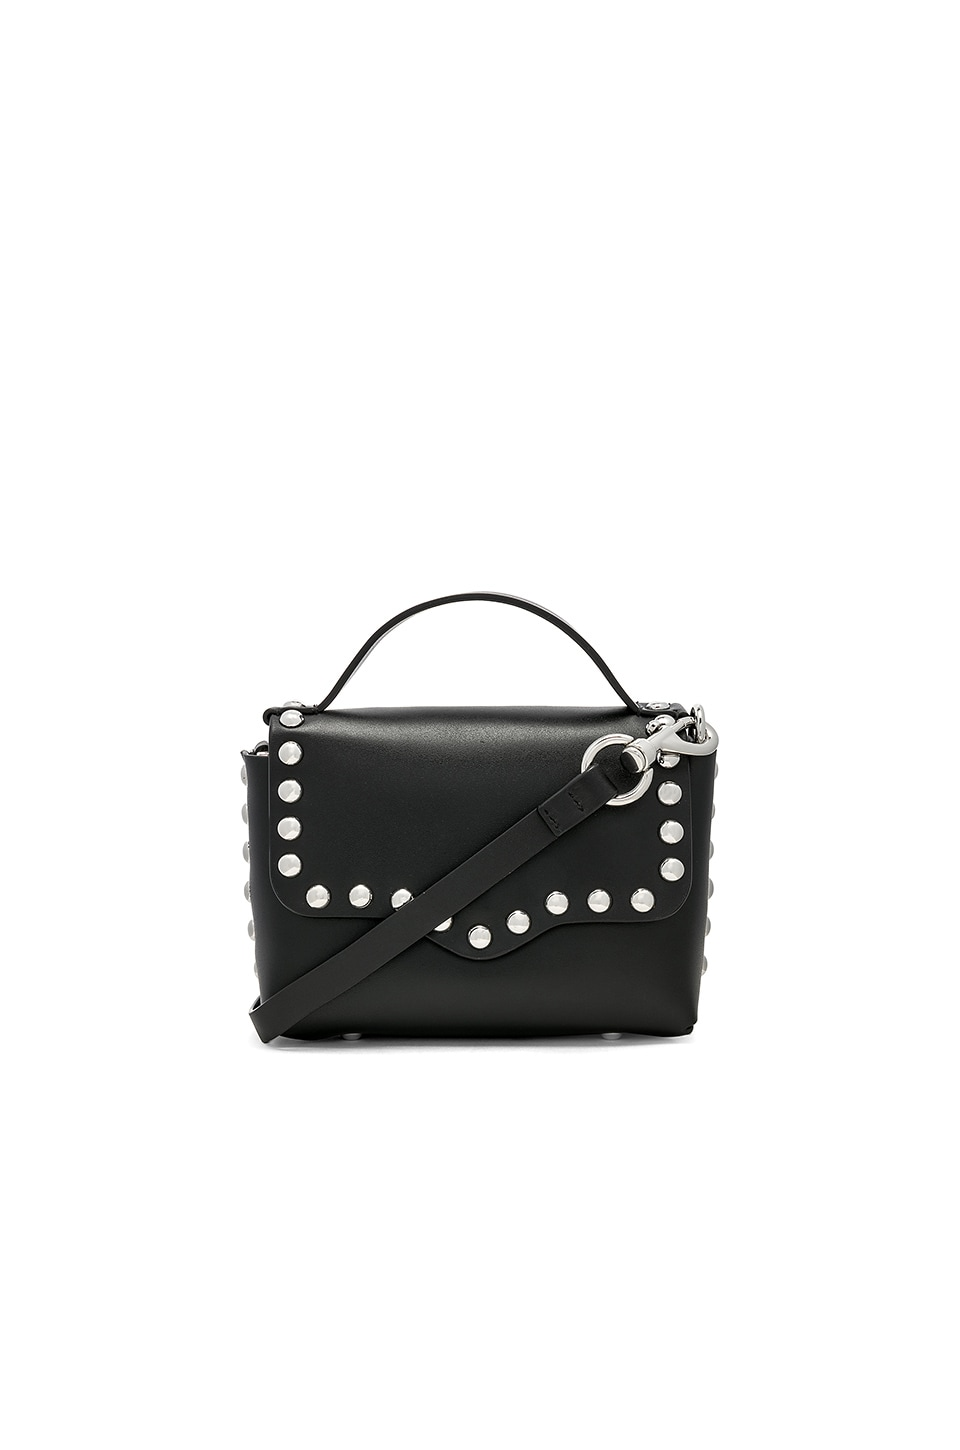 Rebecca Minkoff Blythe Small Flap Crossbody Bag in Black